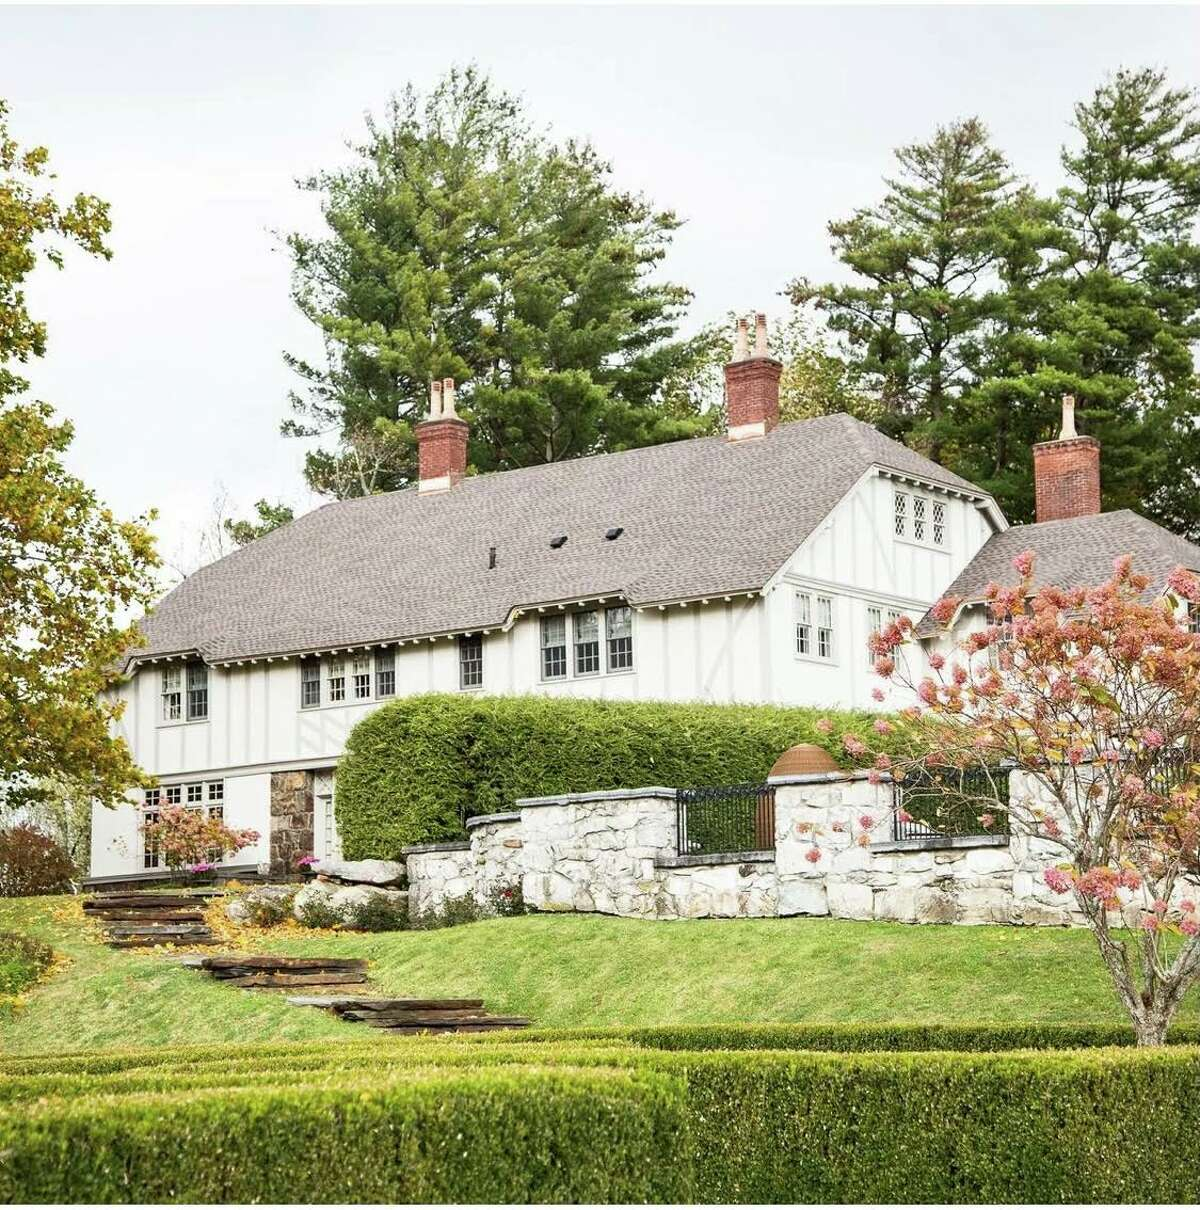 """""""Real Housewives of New York City"""" alum Dorinda Medley's Blue Stone Manor in Great Barrington, Mass. has been put on Airbnb for two one-night-only bookings in Aug. 2021."""